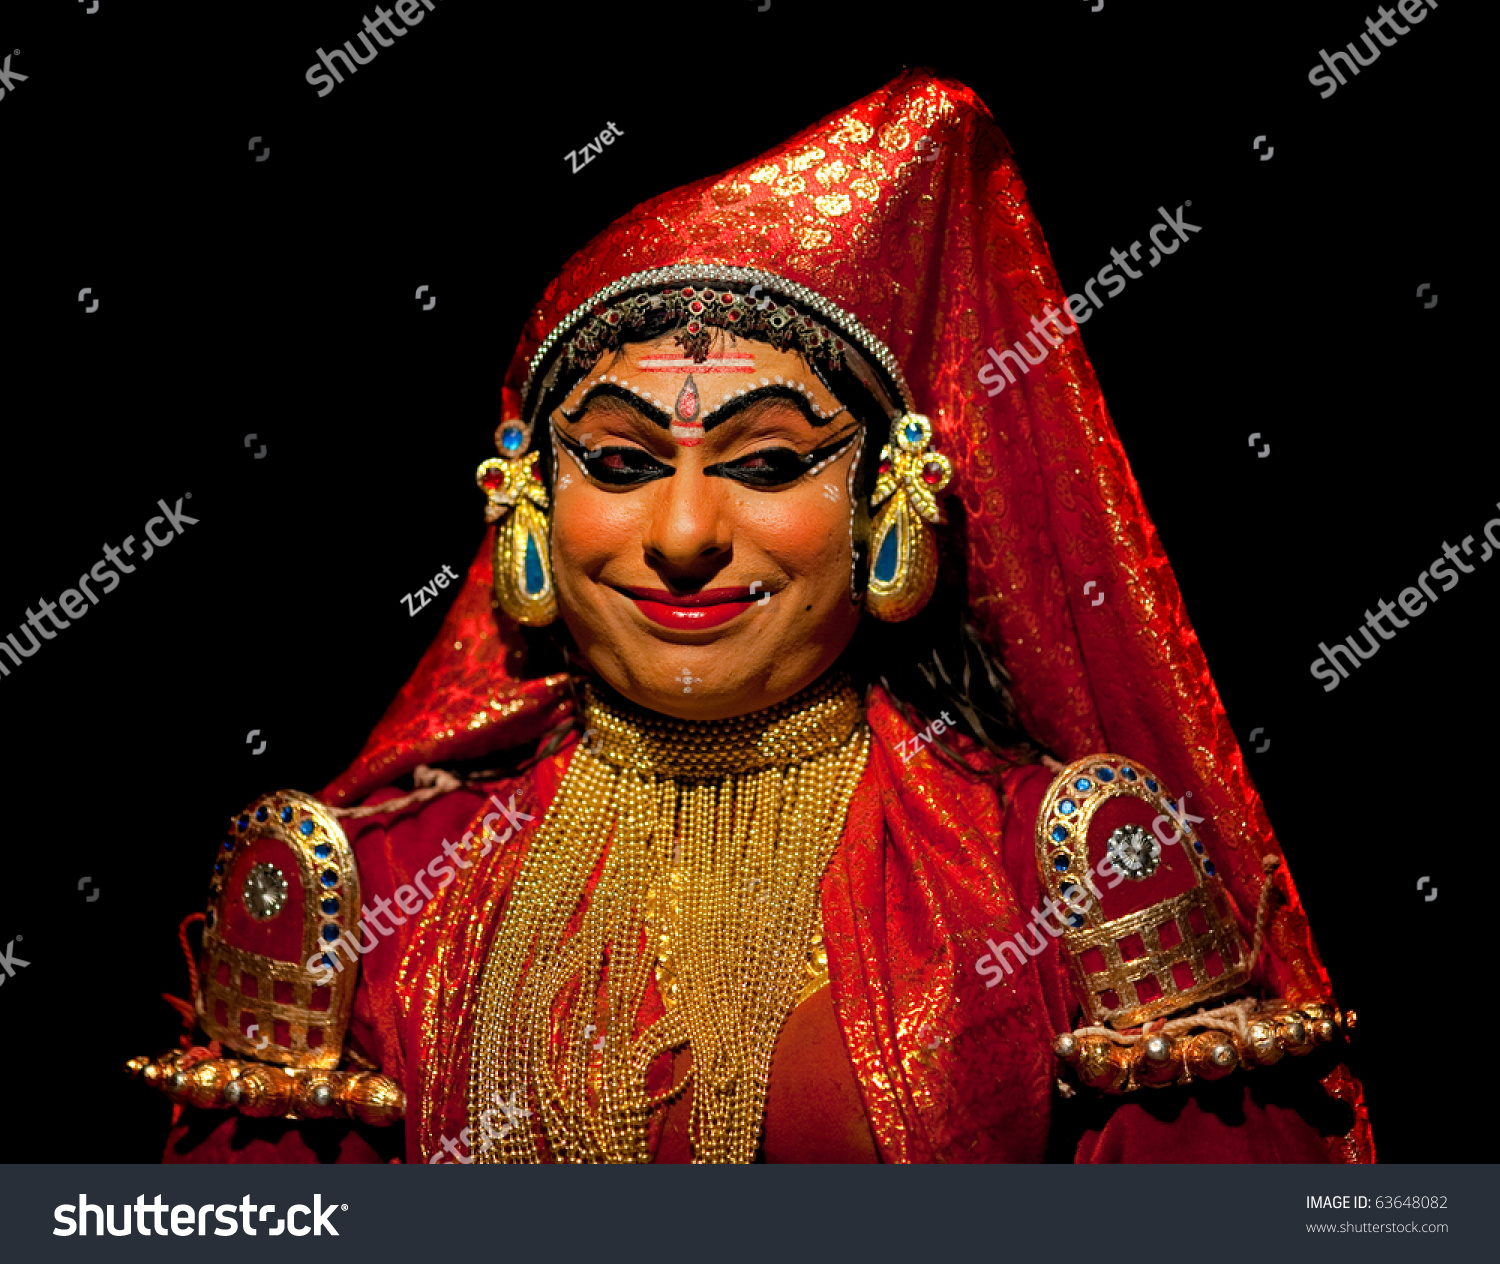 Kathakali Ancient Indian Dance Theater Movie HD free download 720p